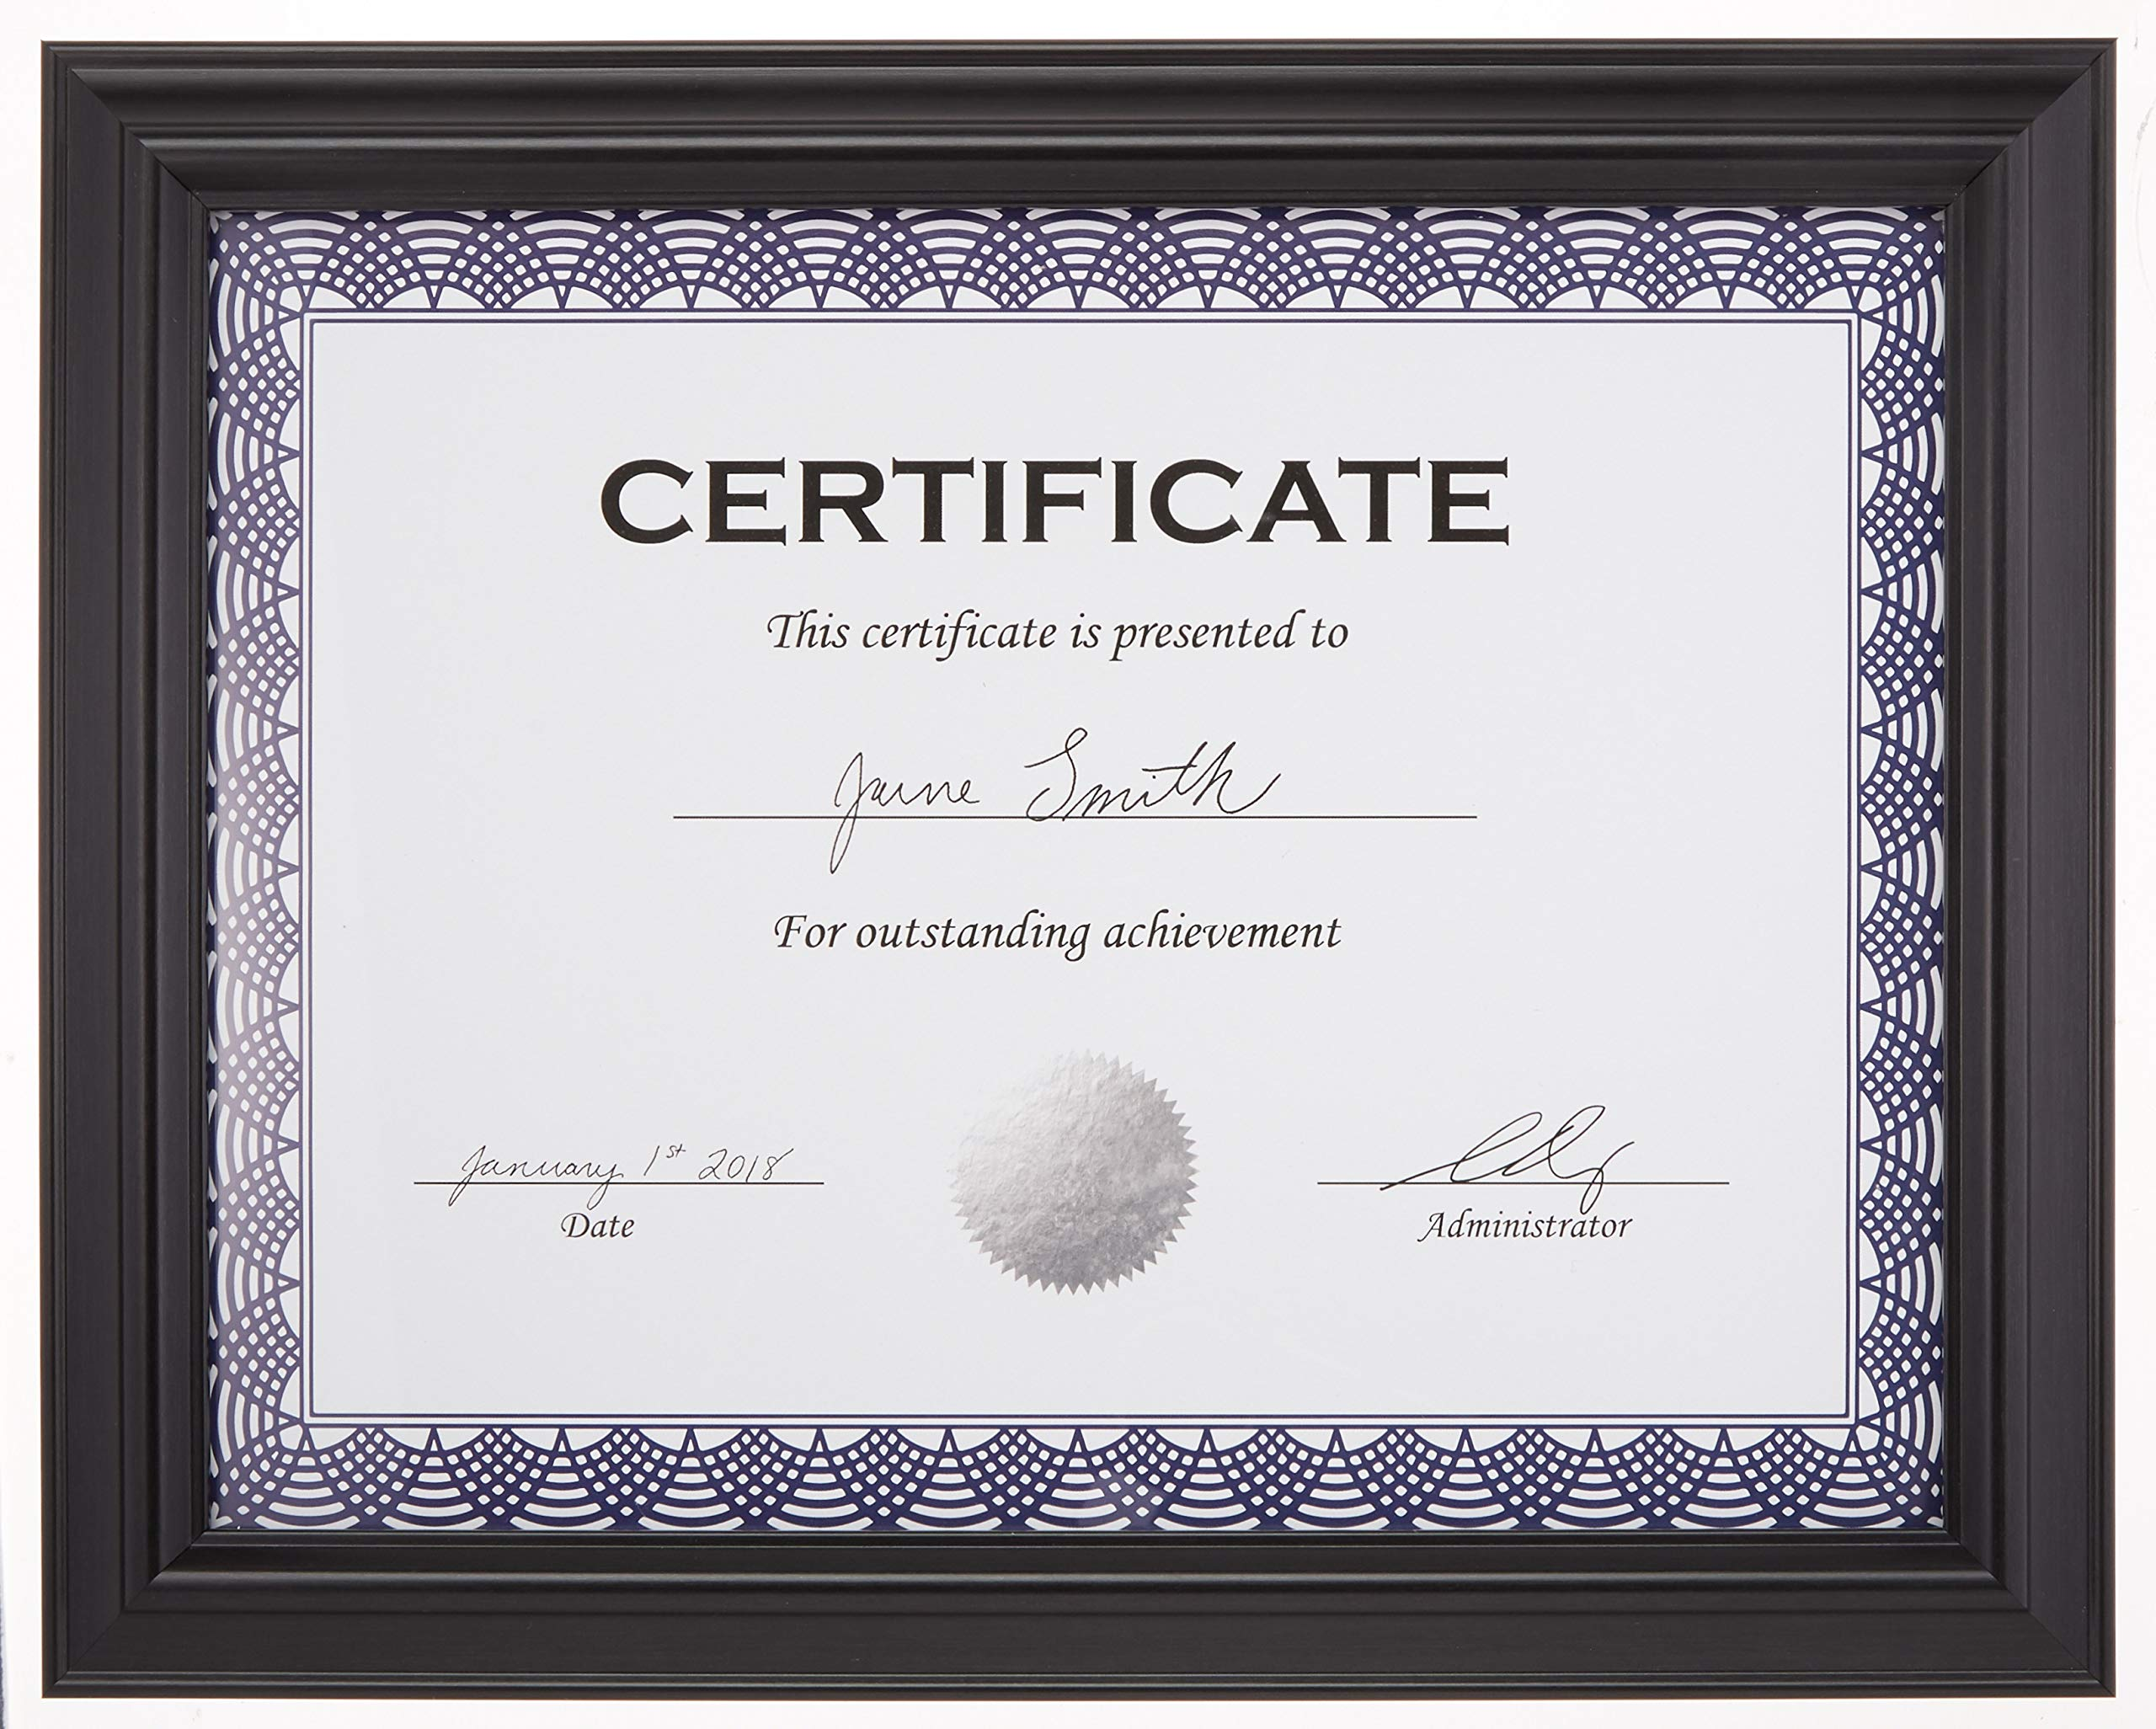 AmazonBasics Certificate Document Frame Without Mat, 8.5'' x 11'', Black, 3-Pack by AmazonBasics